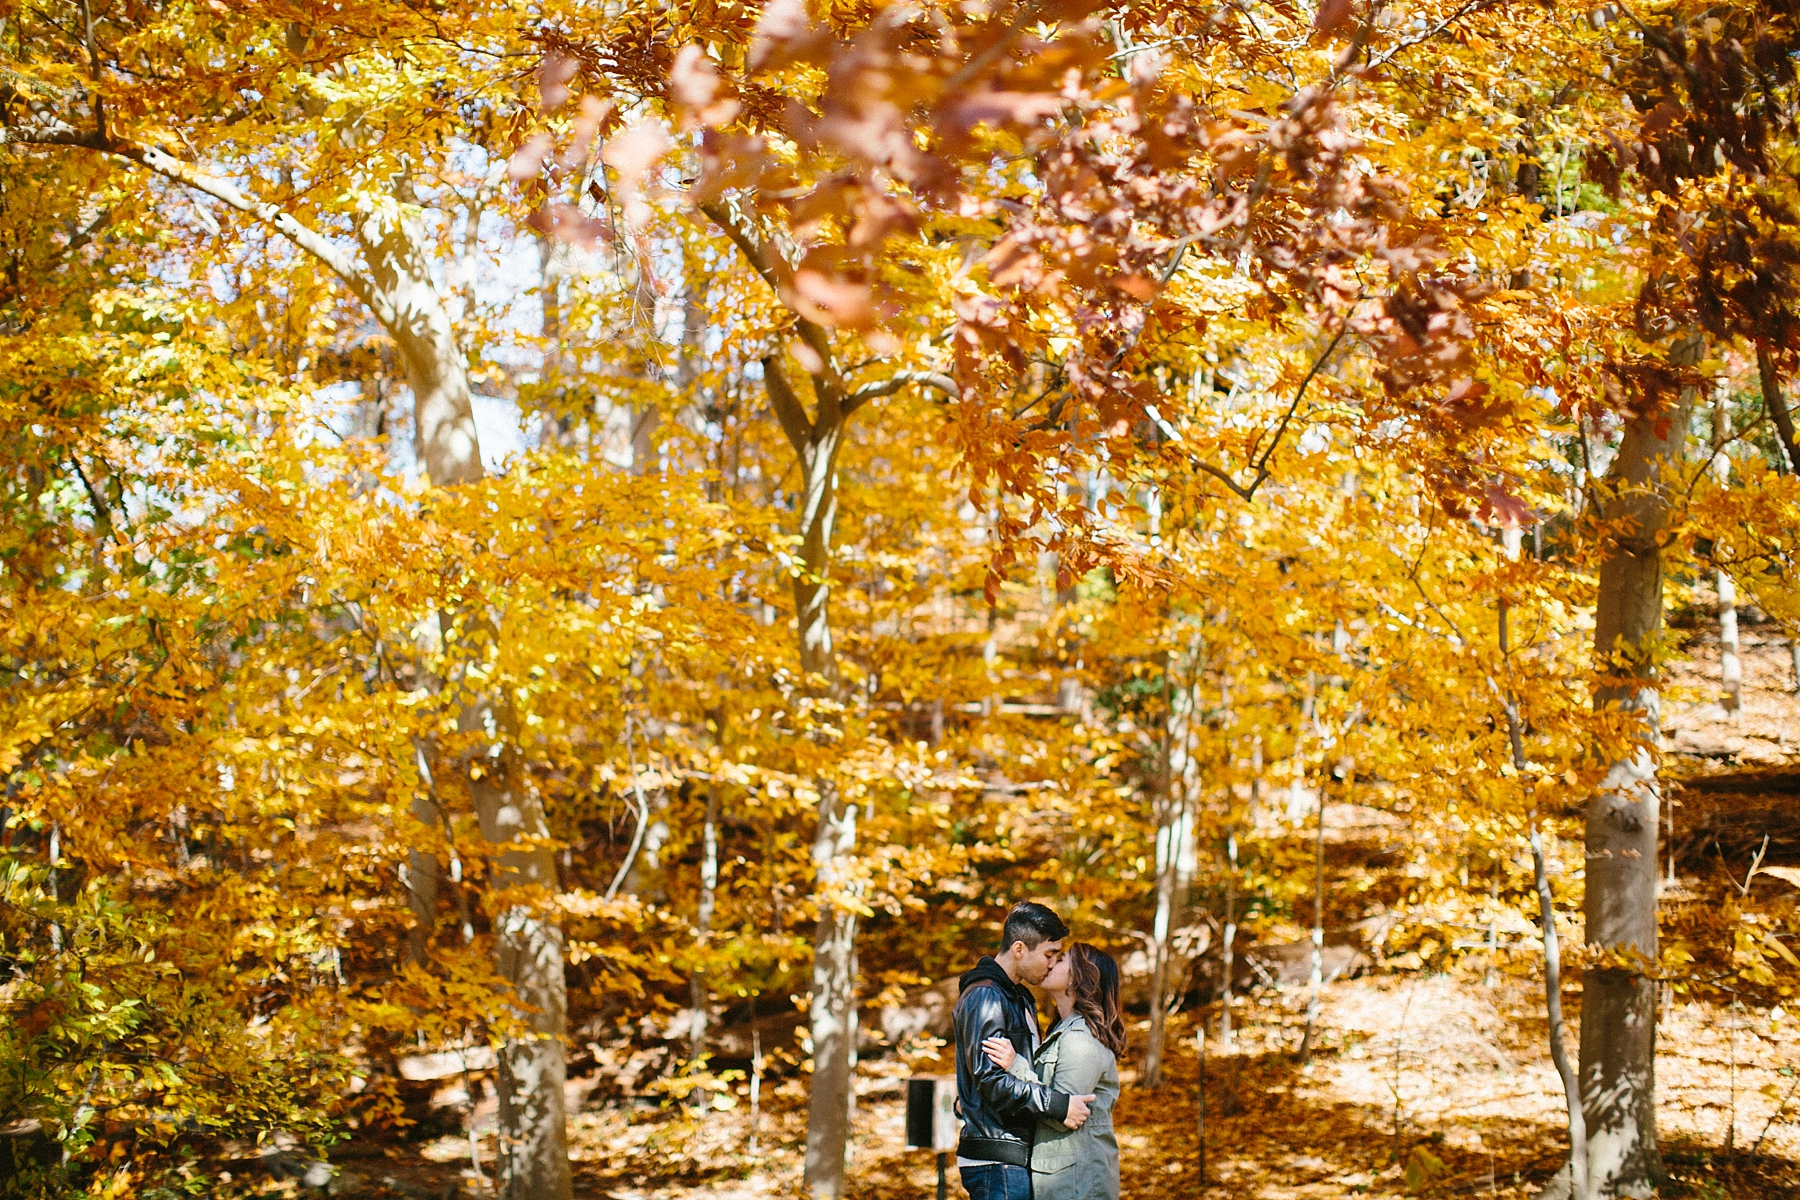 nj-arboretum-engagement-session-virgina_0009.jpg